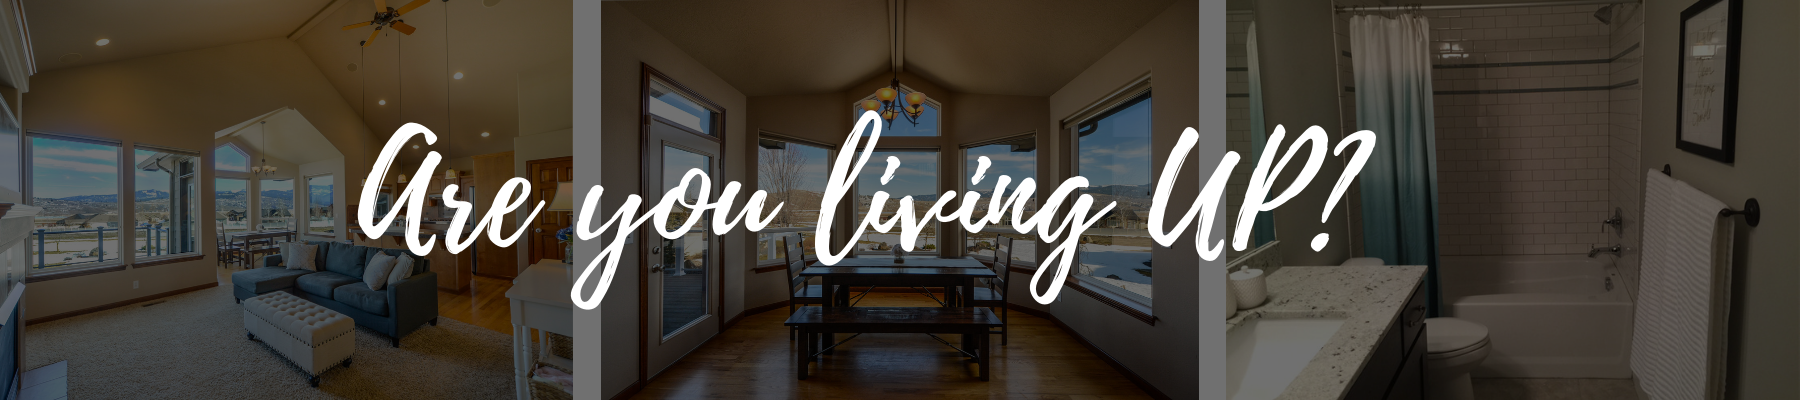 are you living up? Updwell Homes